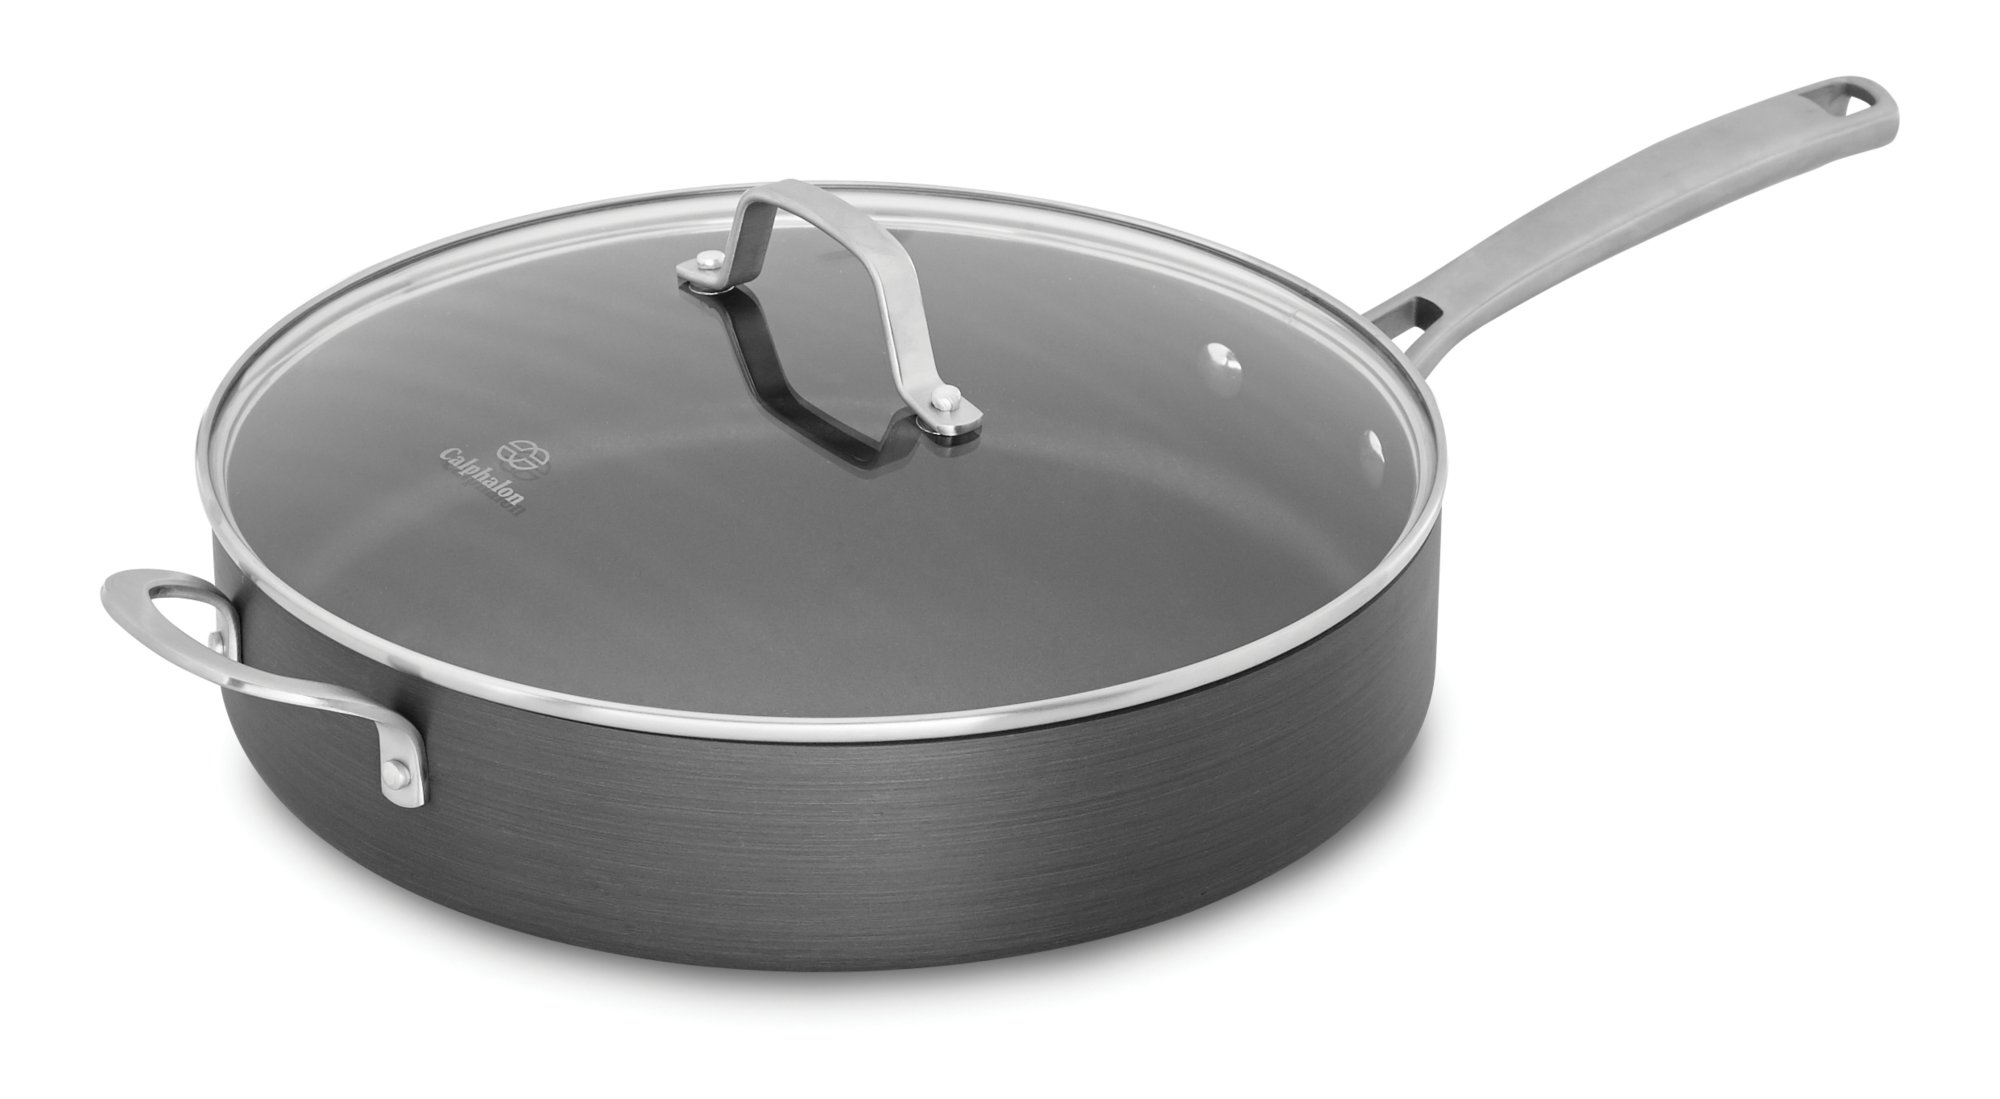 Calphalon Classic™ Nonstick 5-qt. Saute Pan with Cover